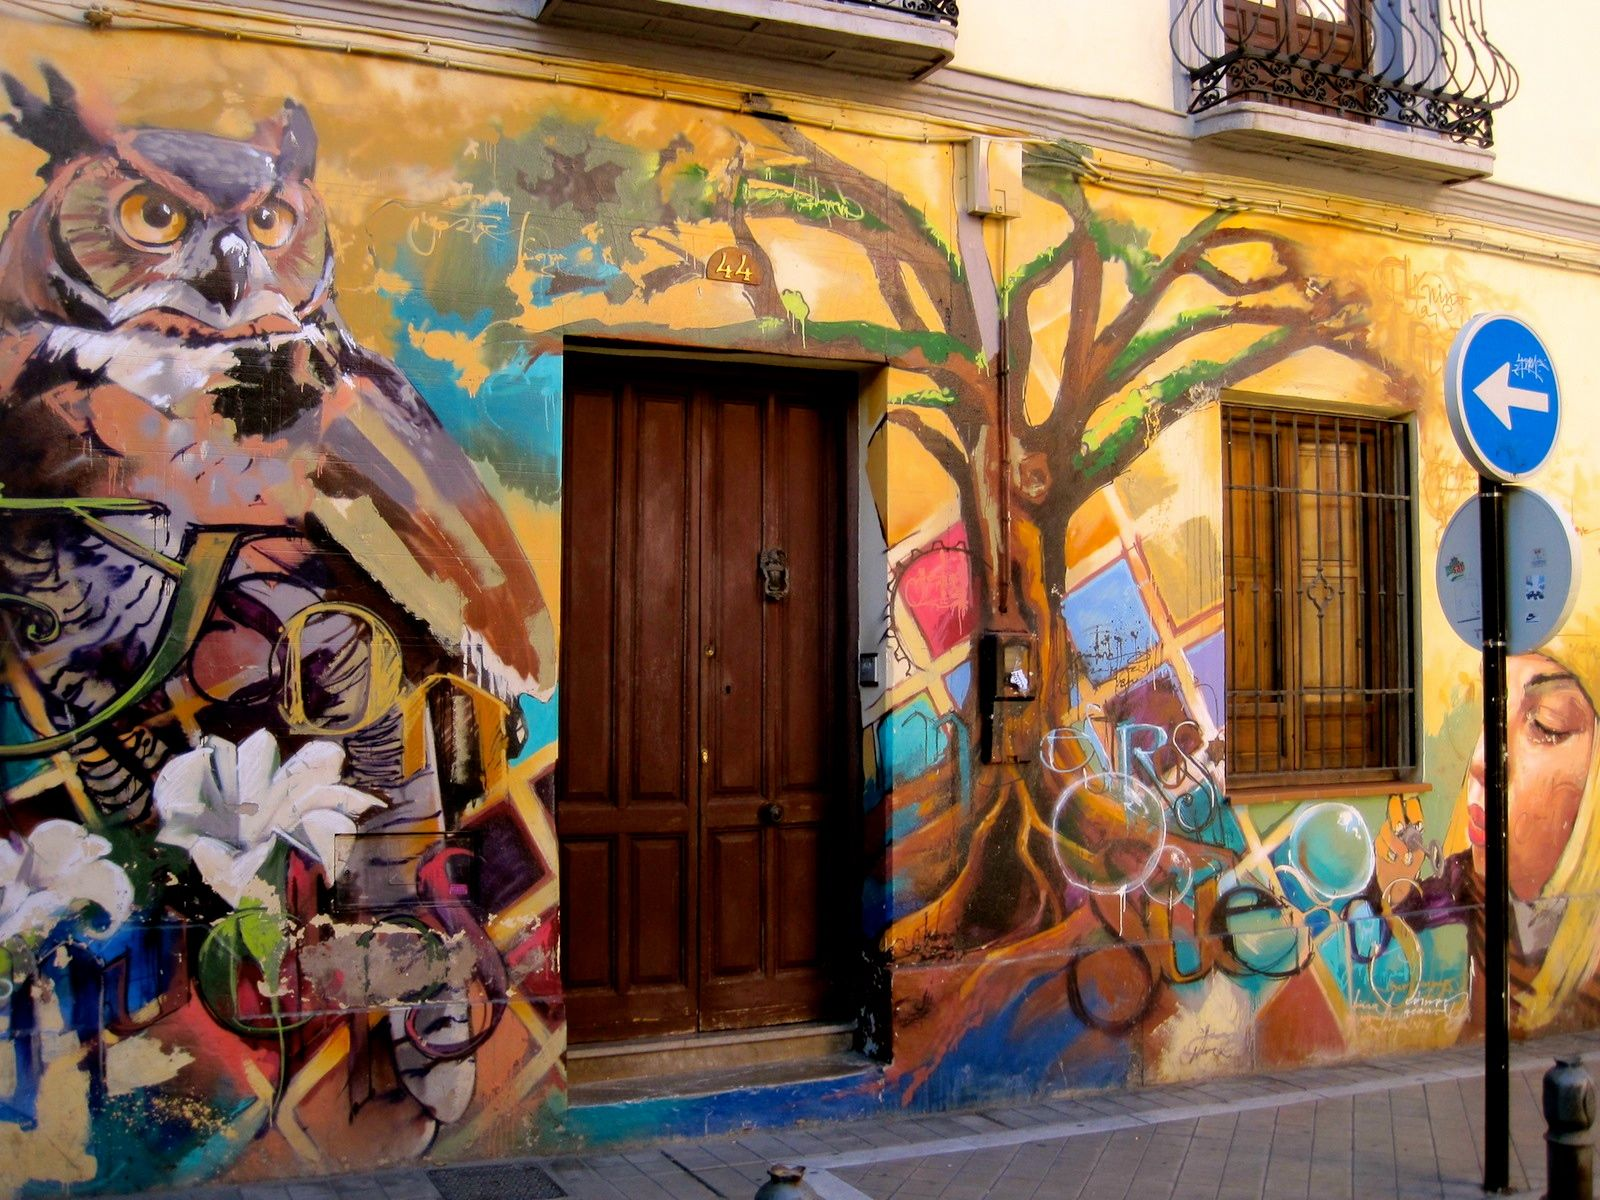 One of El Niño's best pieces in El Realejo, Granada